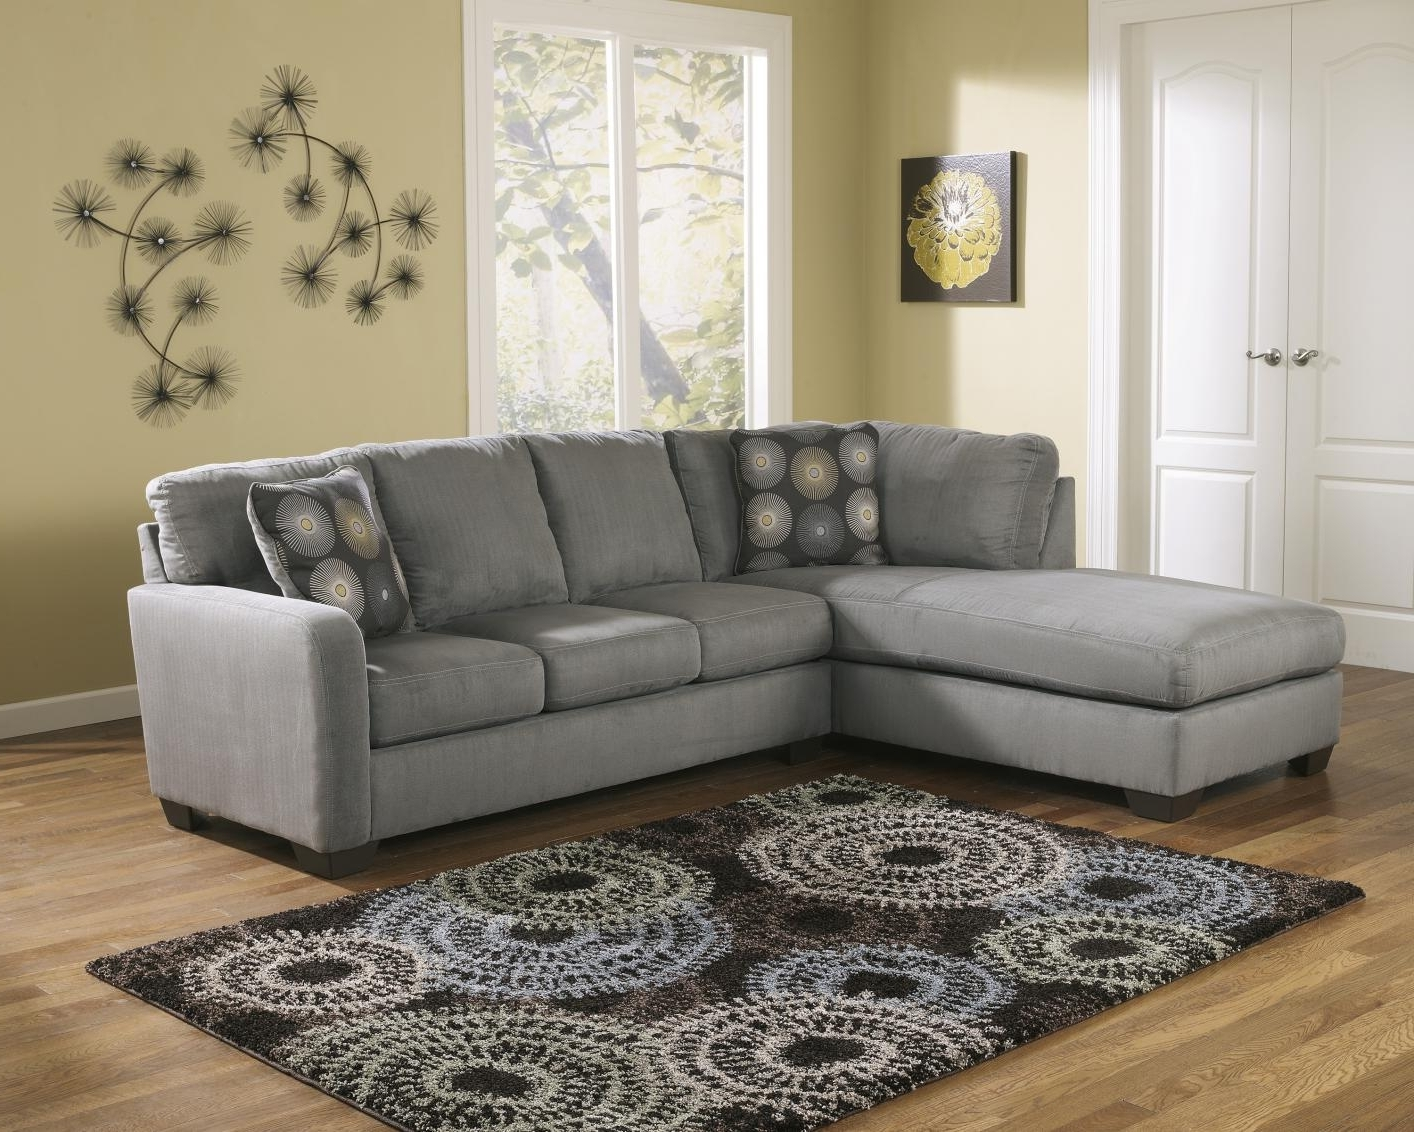 Preferred Fabric Sectional Sofas Intended For Grey Fabric Sectional Sofa – Steal A Sofa Furniture Outlet Los (View 2 of 20)